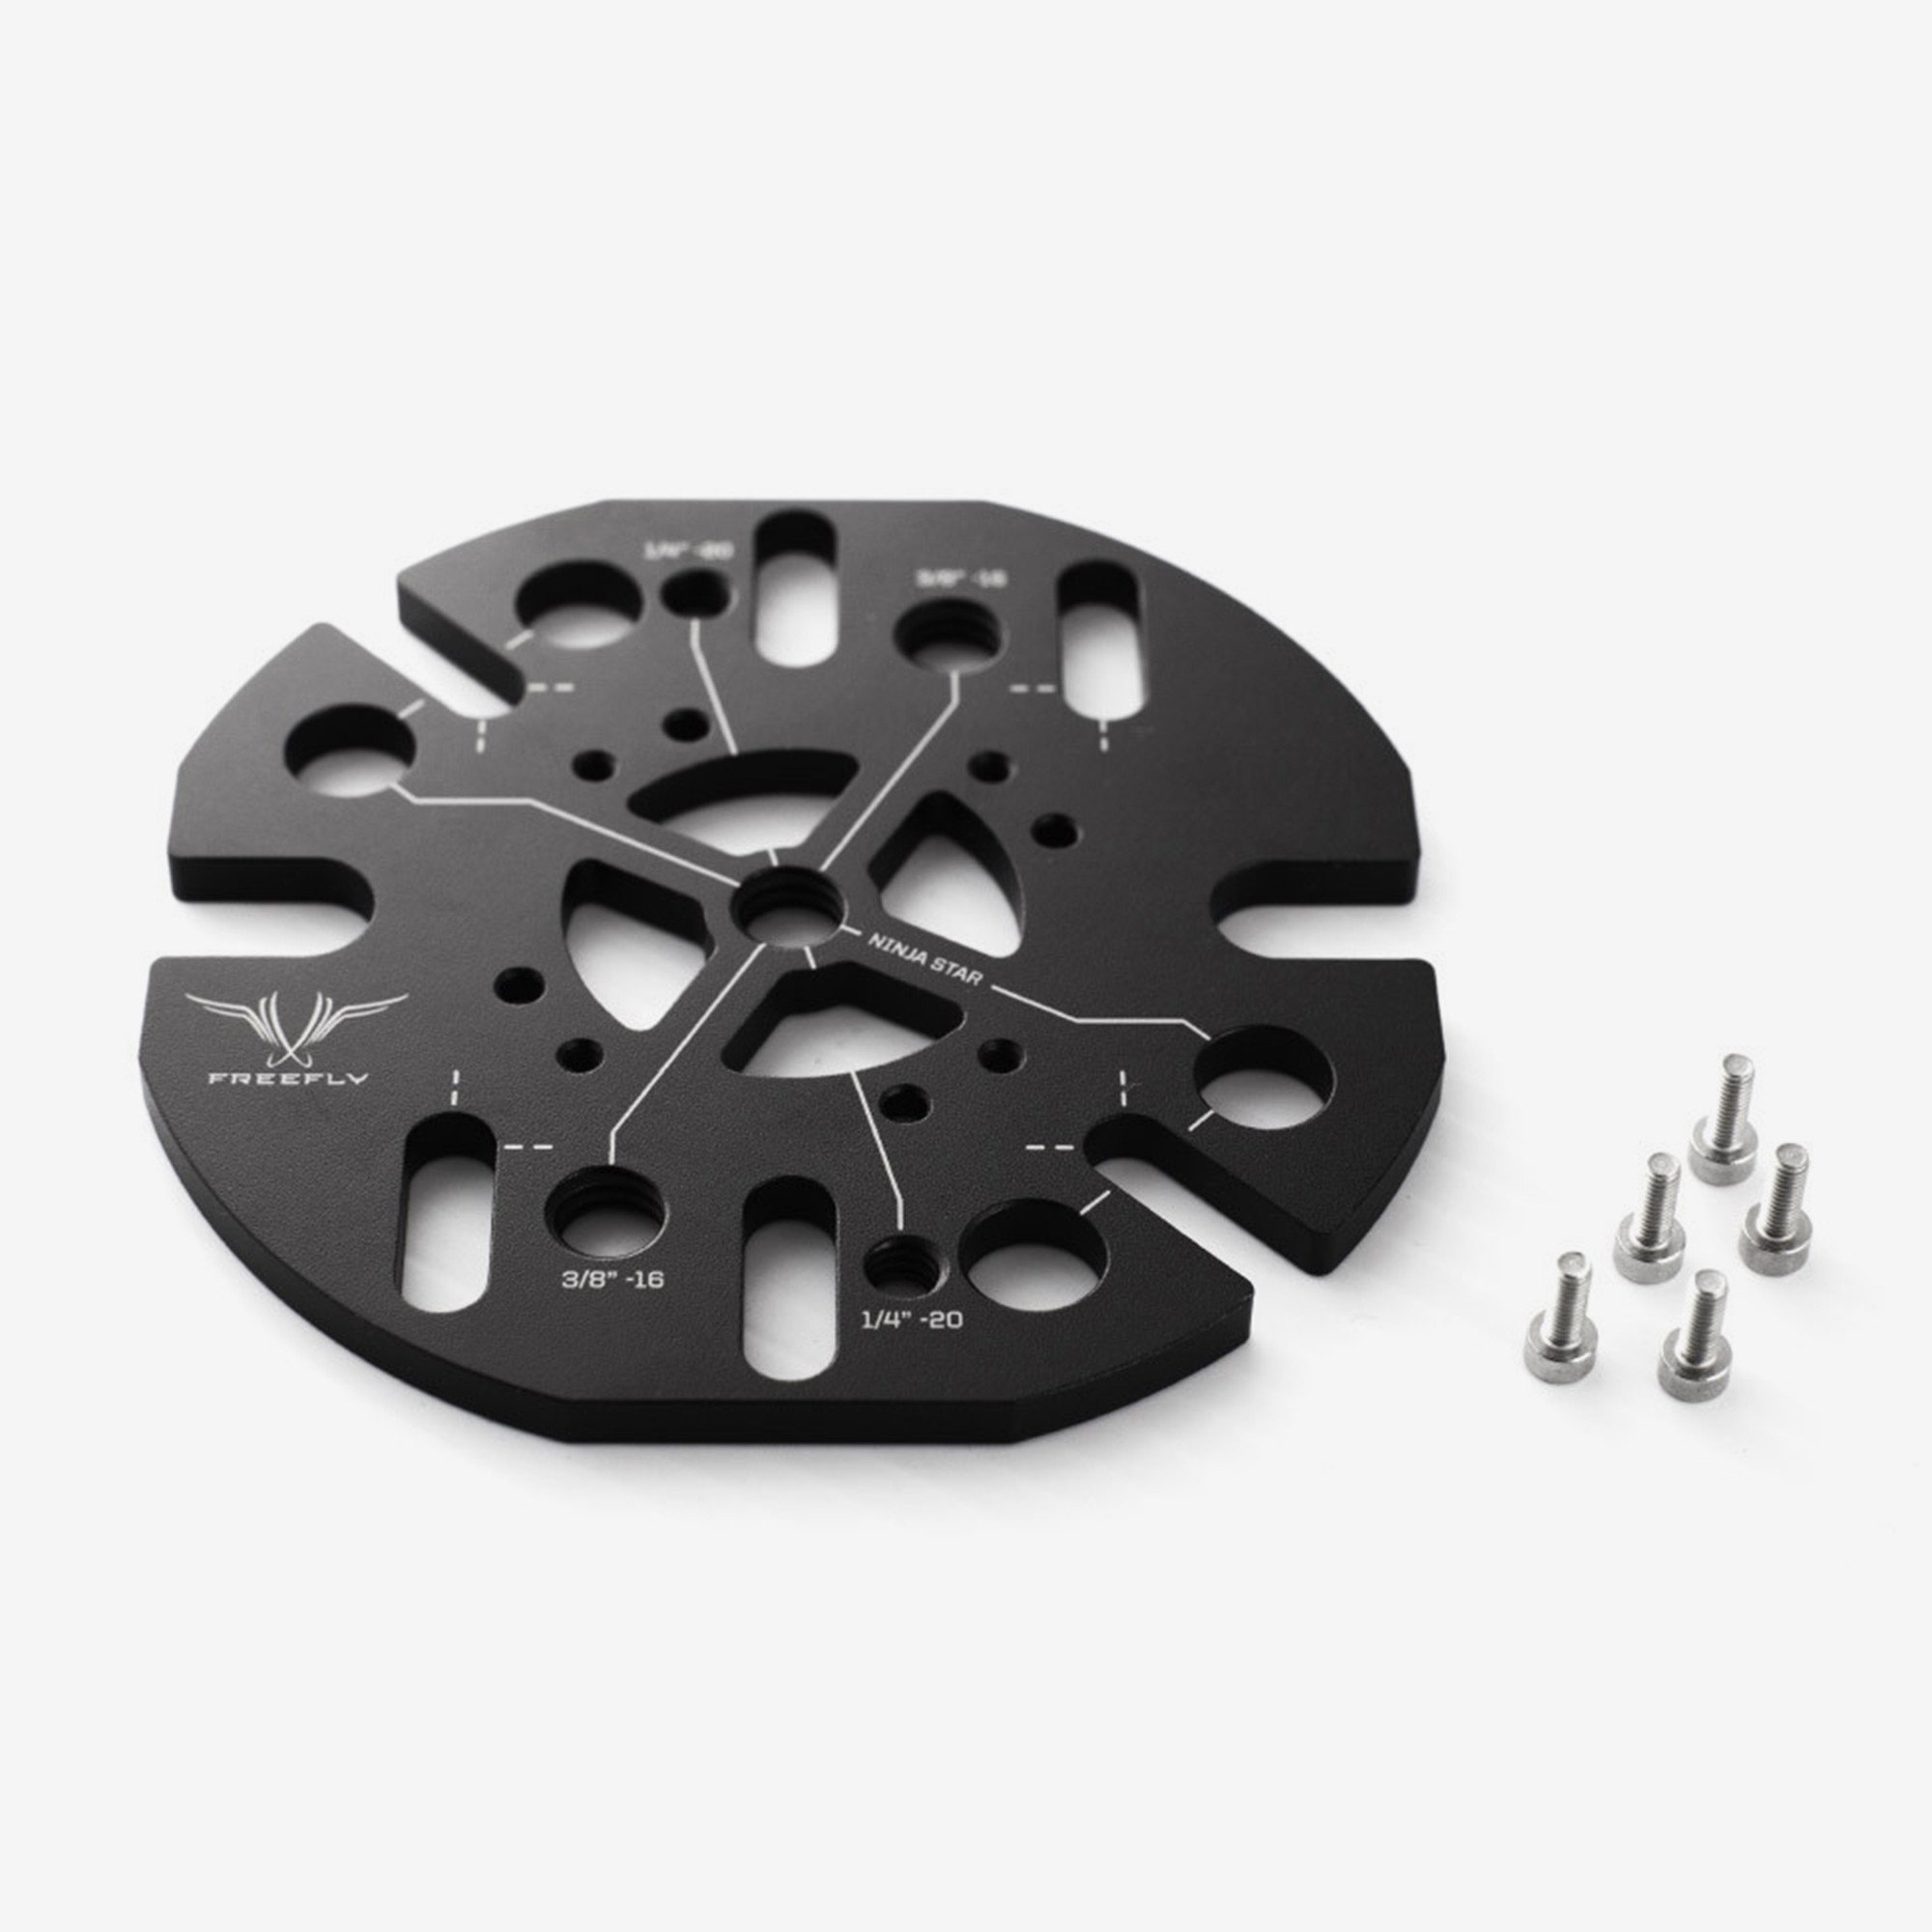 FreeFly MoVI 'Ninja Star' Adapter Plate